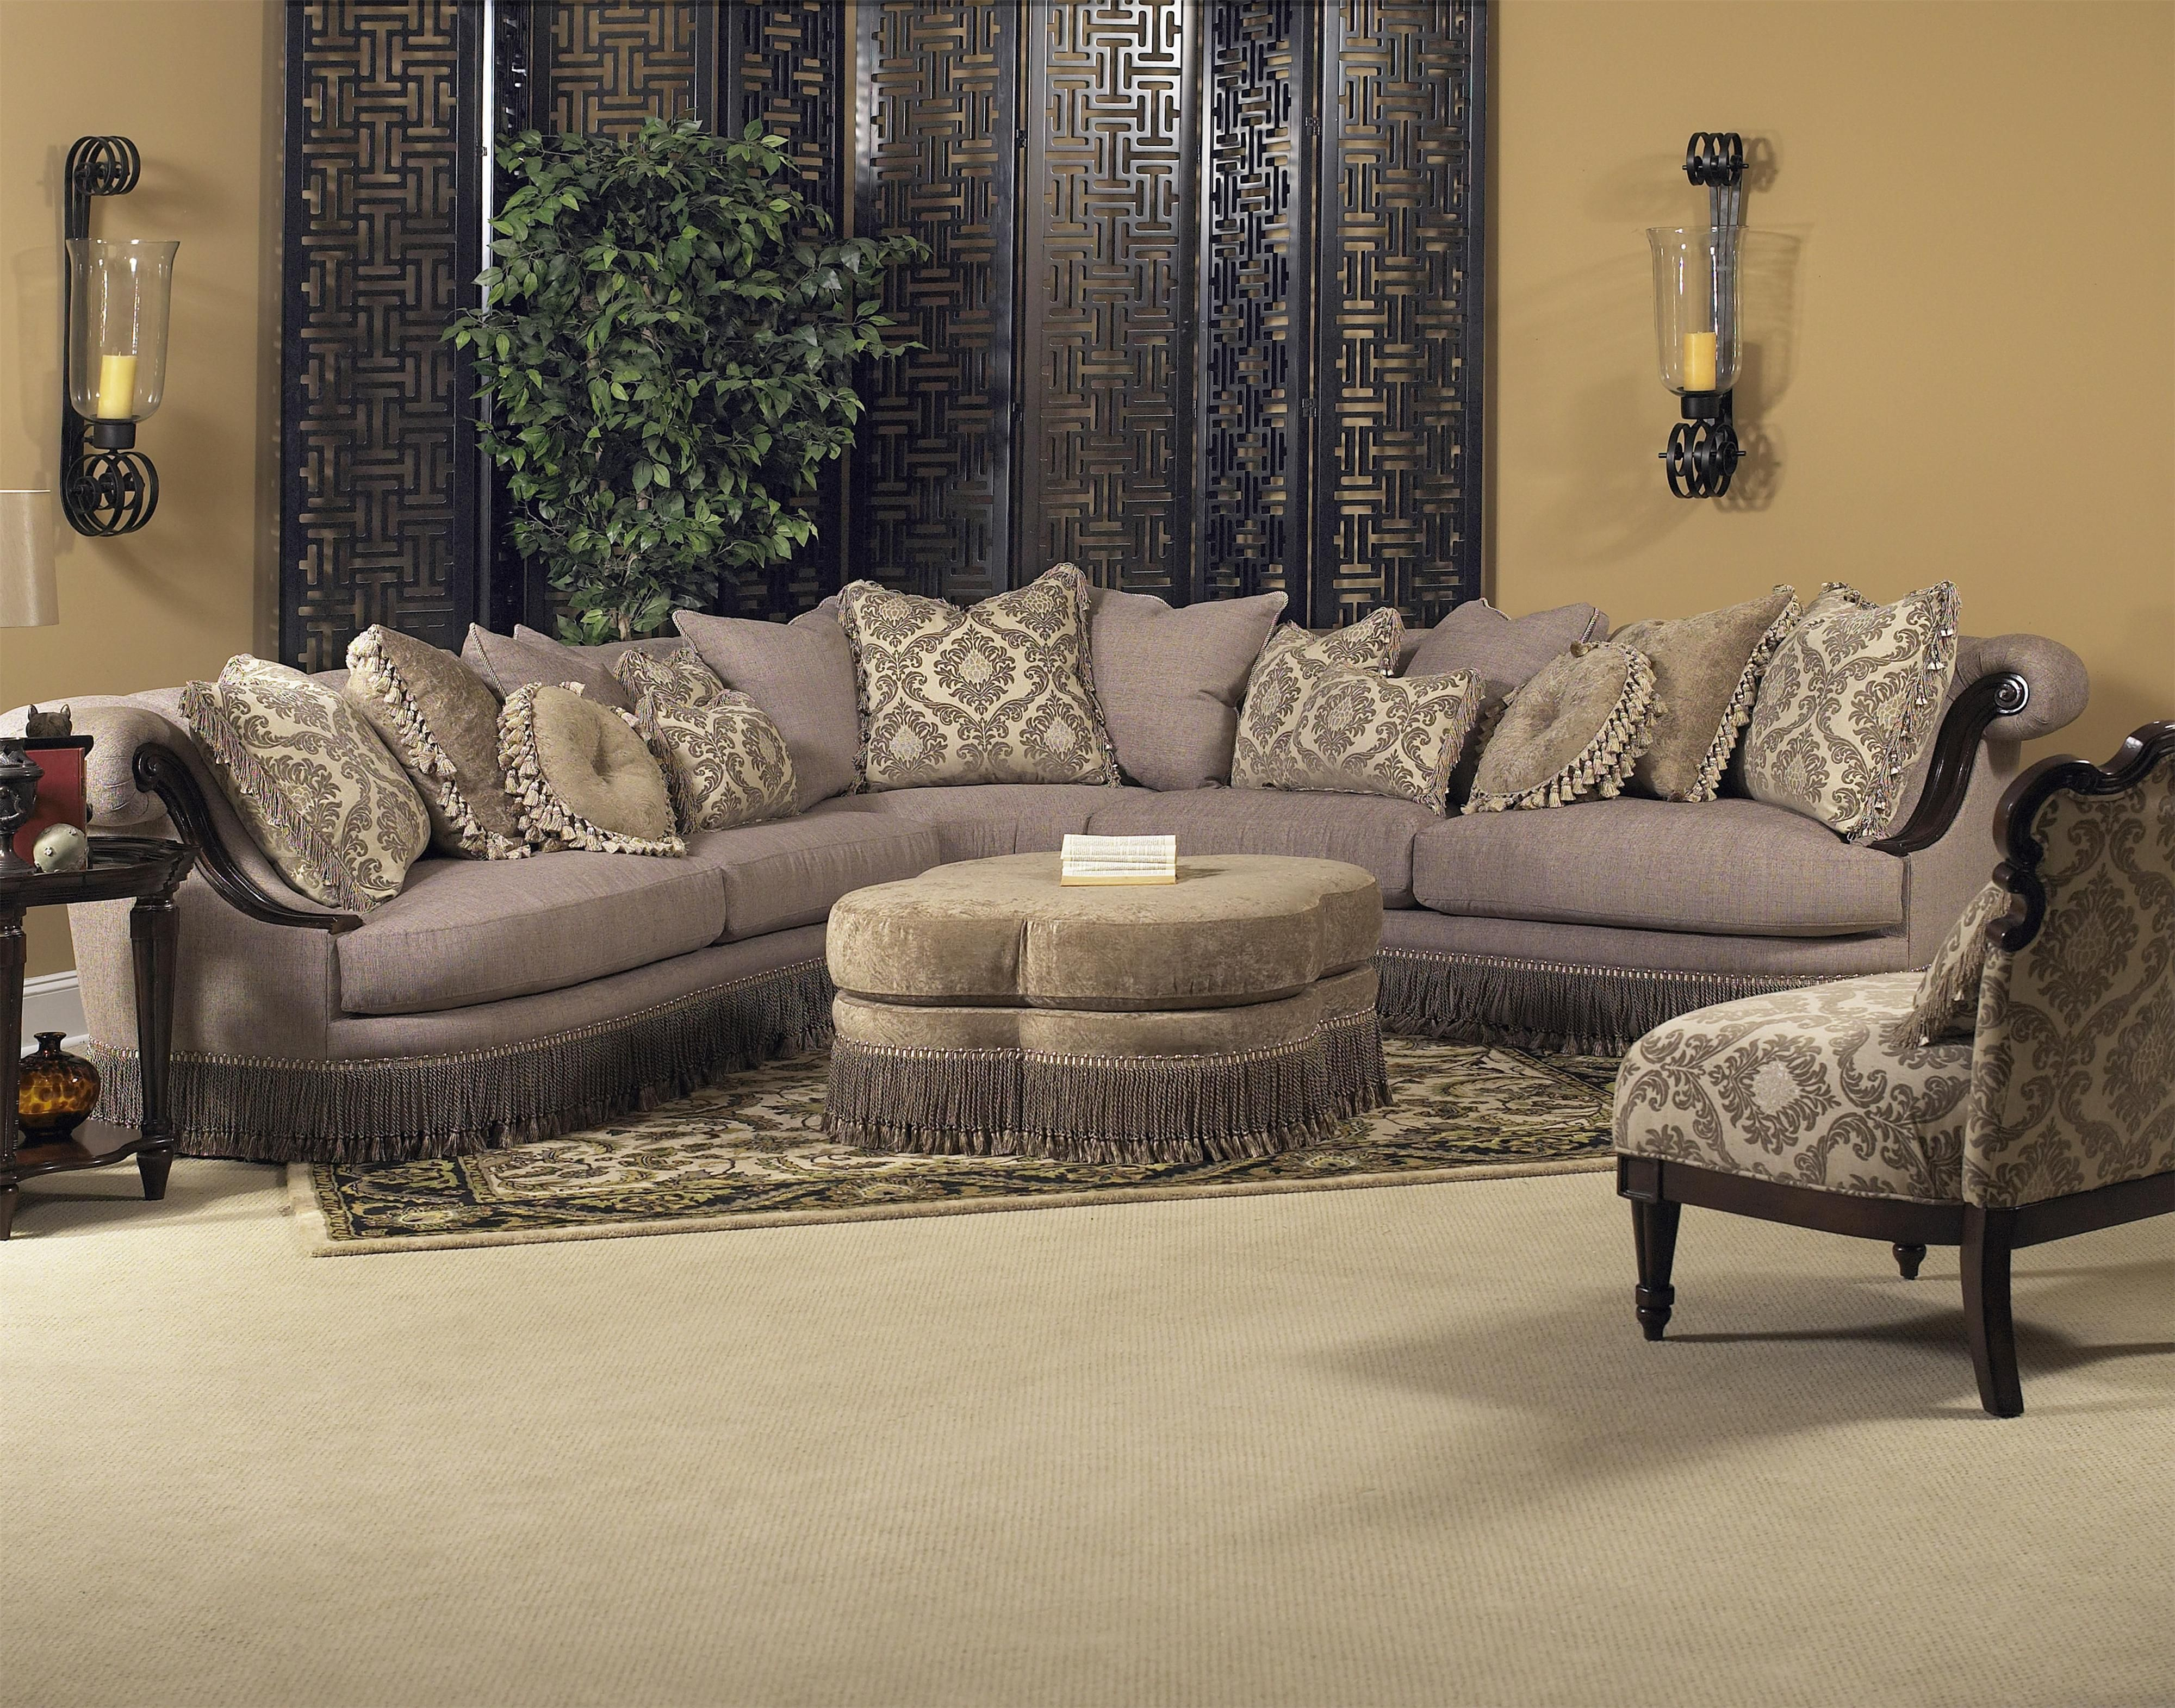 Classic Wellingsley Sectional By Fairmont Designs Available At Royal  Furniture